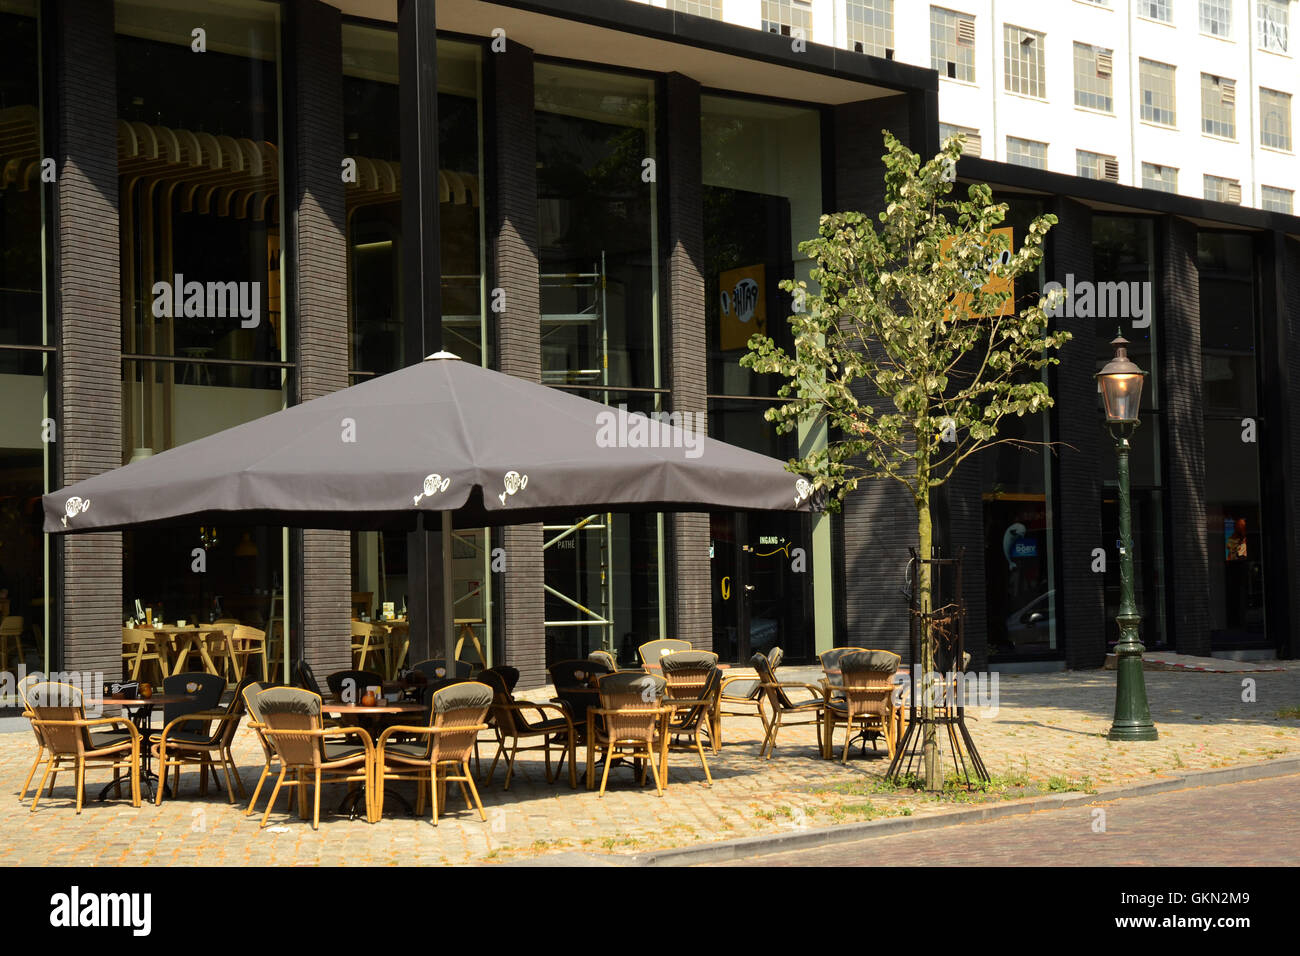 Terrace of Charlie's Café, located by the new Pathé cinema complex in Maastricht - Stock Image